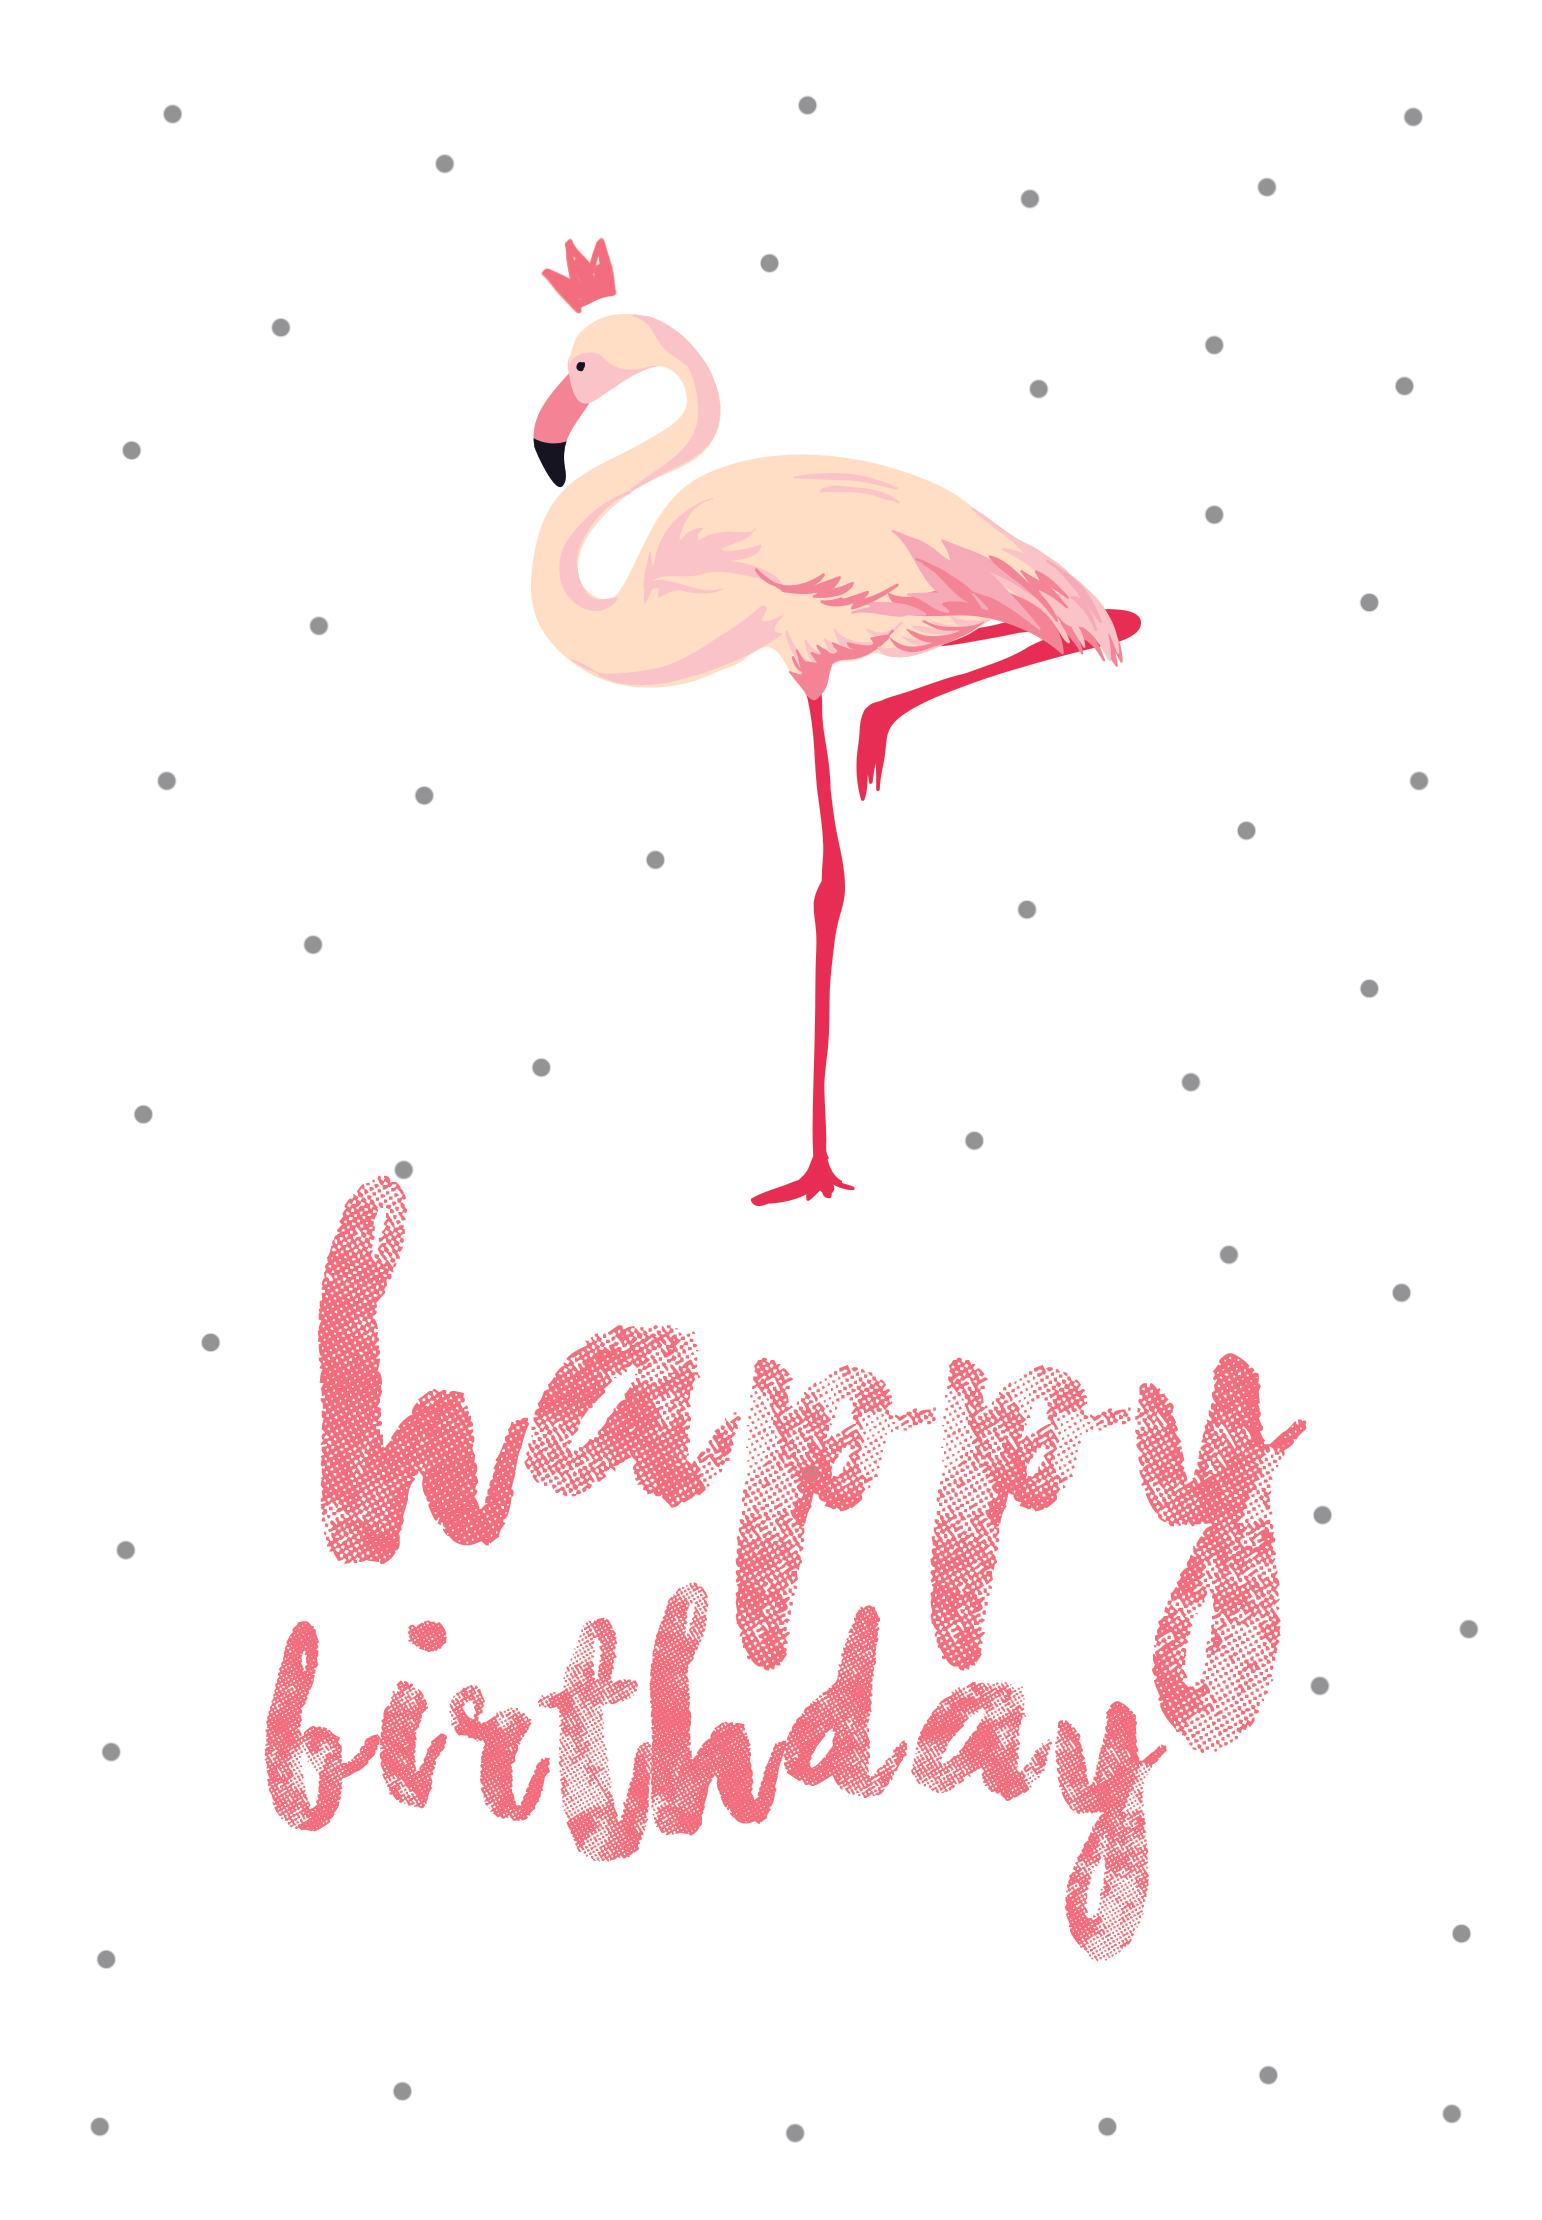 Flamingo birthday free printable birthday card greetings flamingo birthday free printable birthday card greetings island kristyandbryce Choice Image